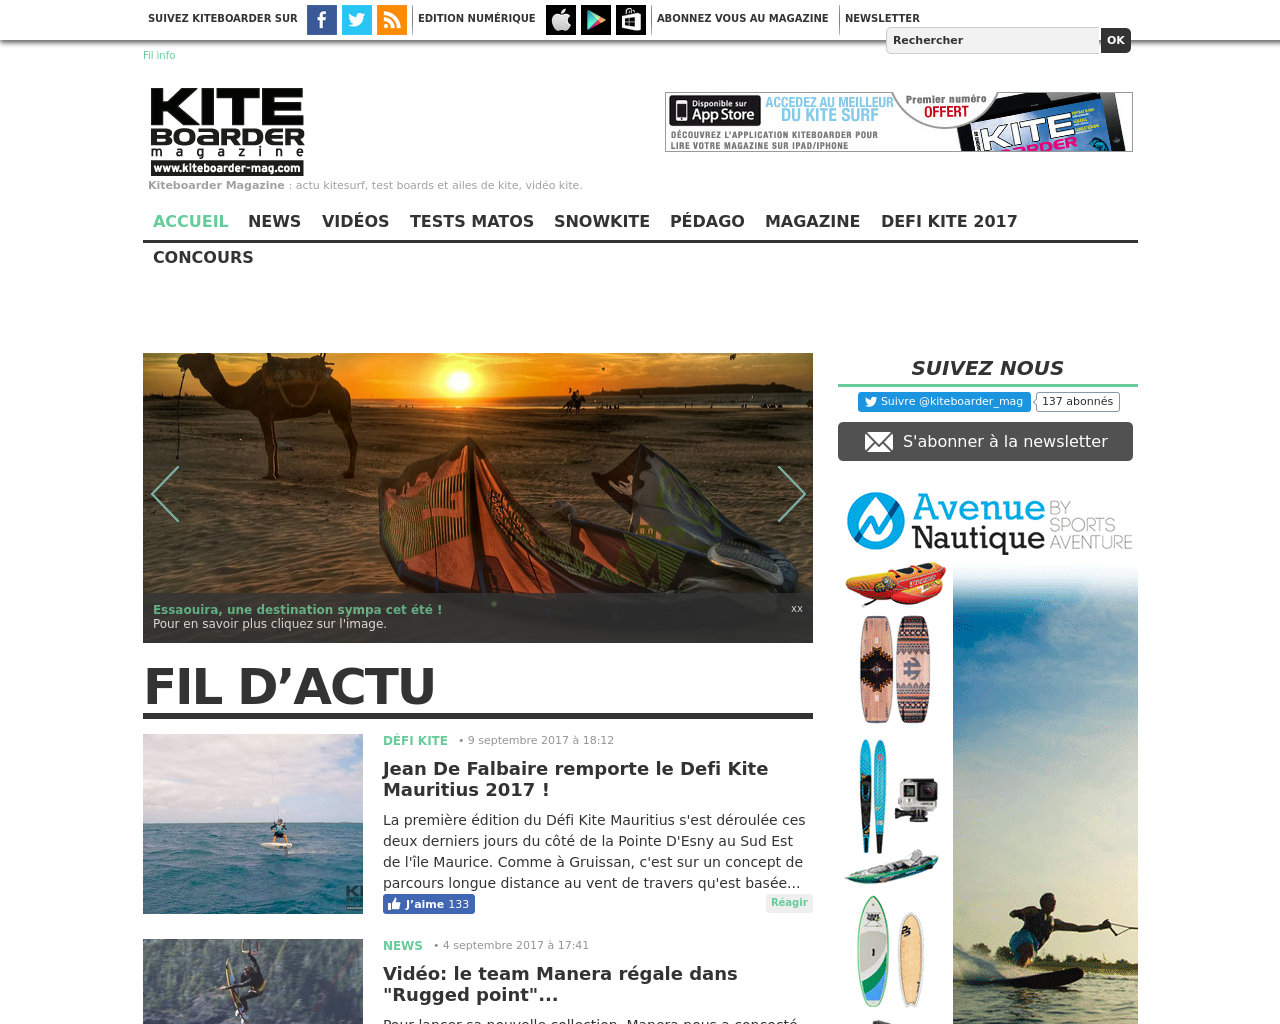 KITE-BOARDER-MAGAZINE-Advertising-Reviews-Pricing